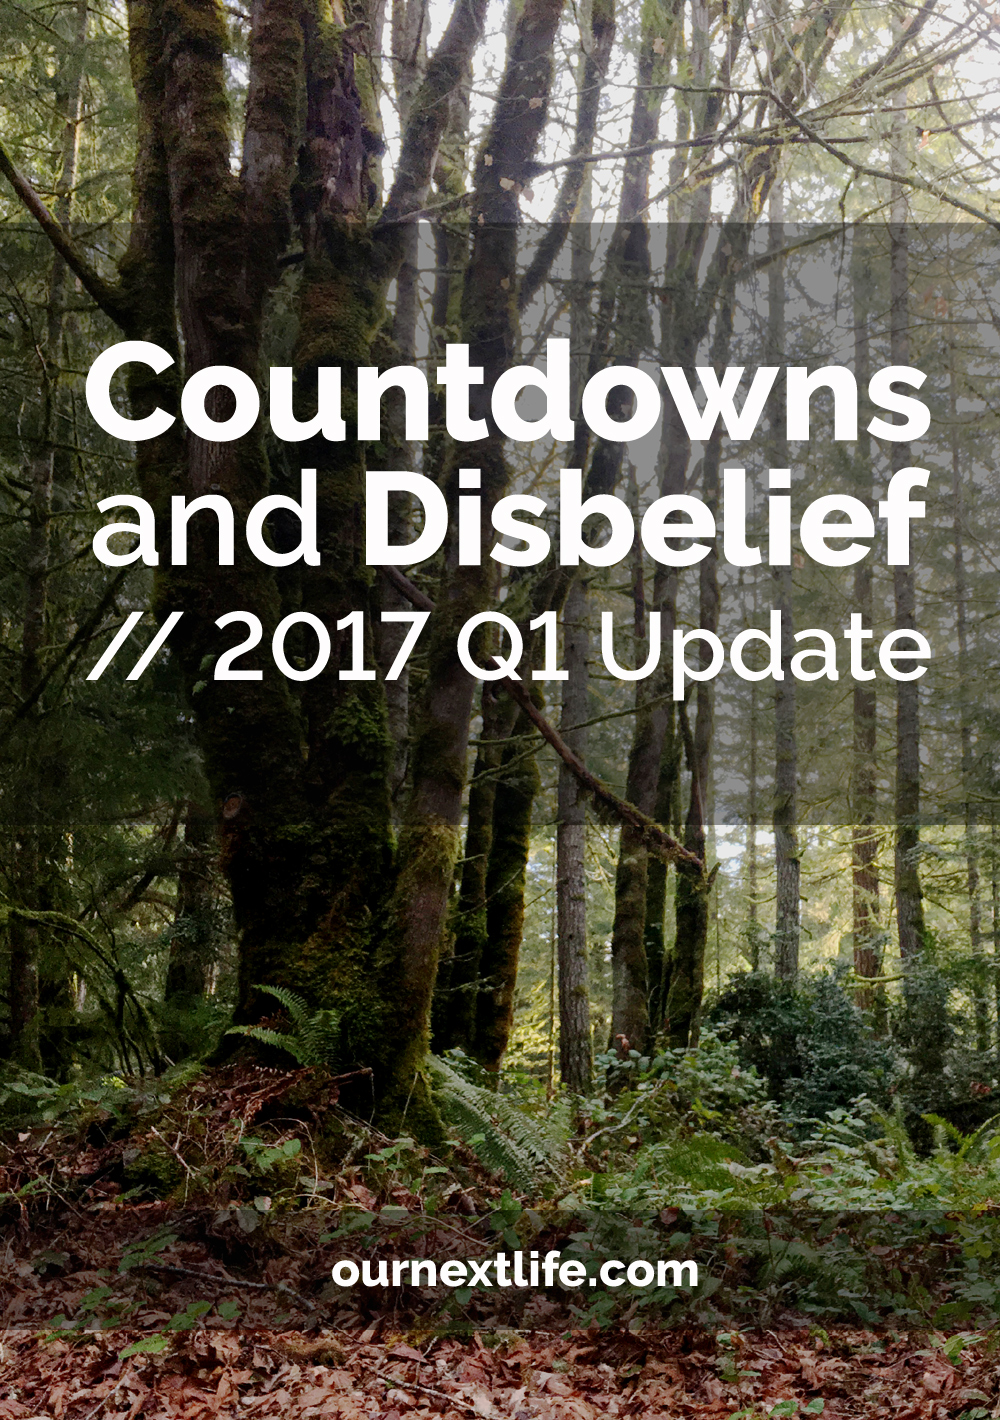 The countdown to early retirement is on! // Quarterly financial update plus countdowns and disbelief // Financial independence, retire early, retirement planning, financial planning